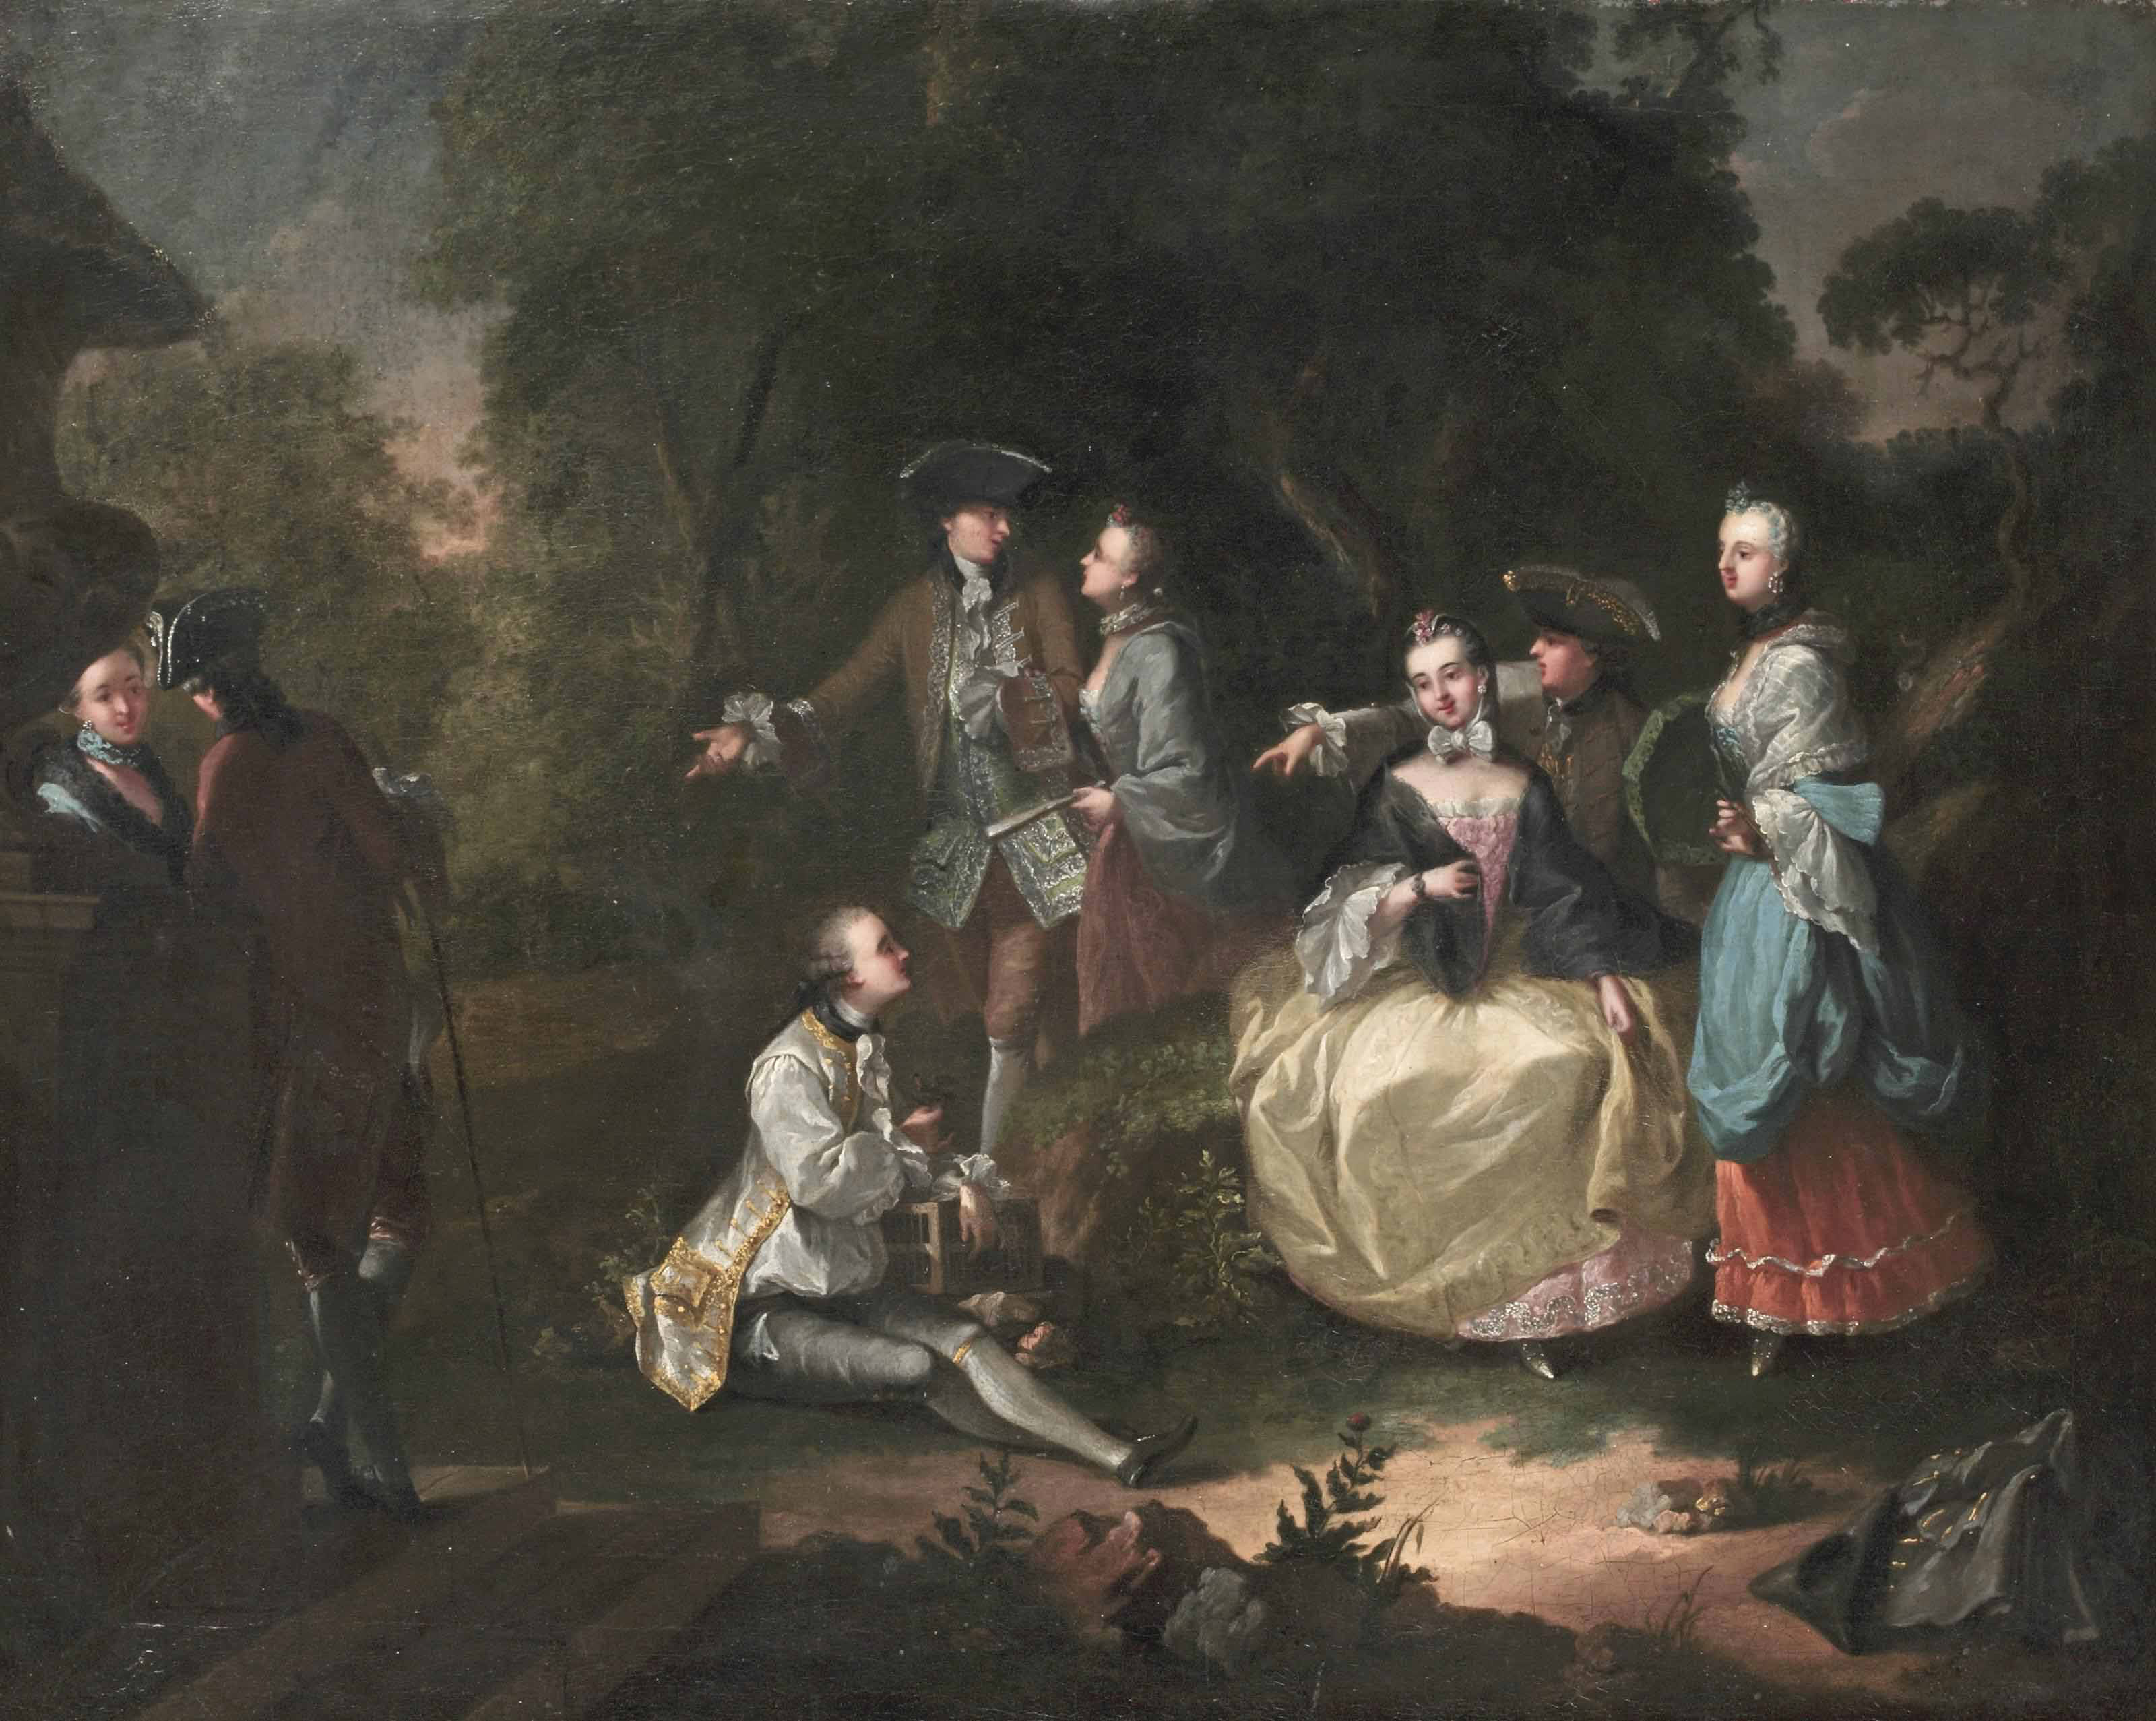 An elegant company making merry in a garden landscape